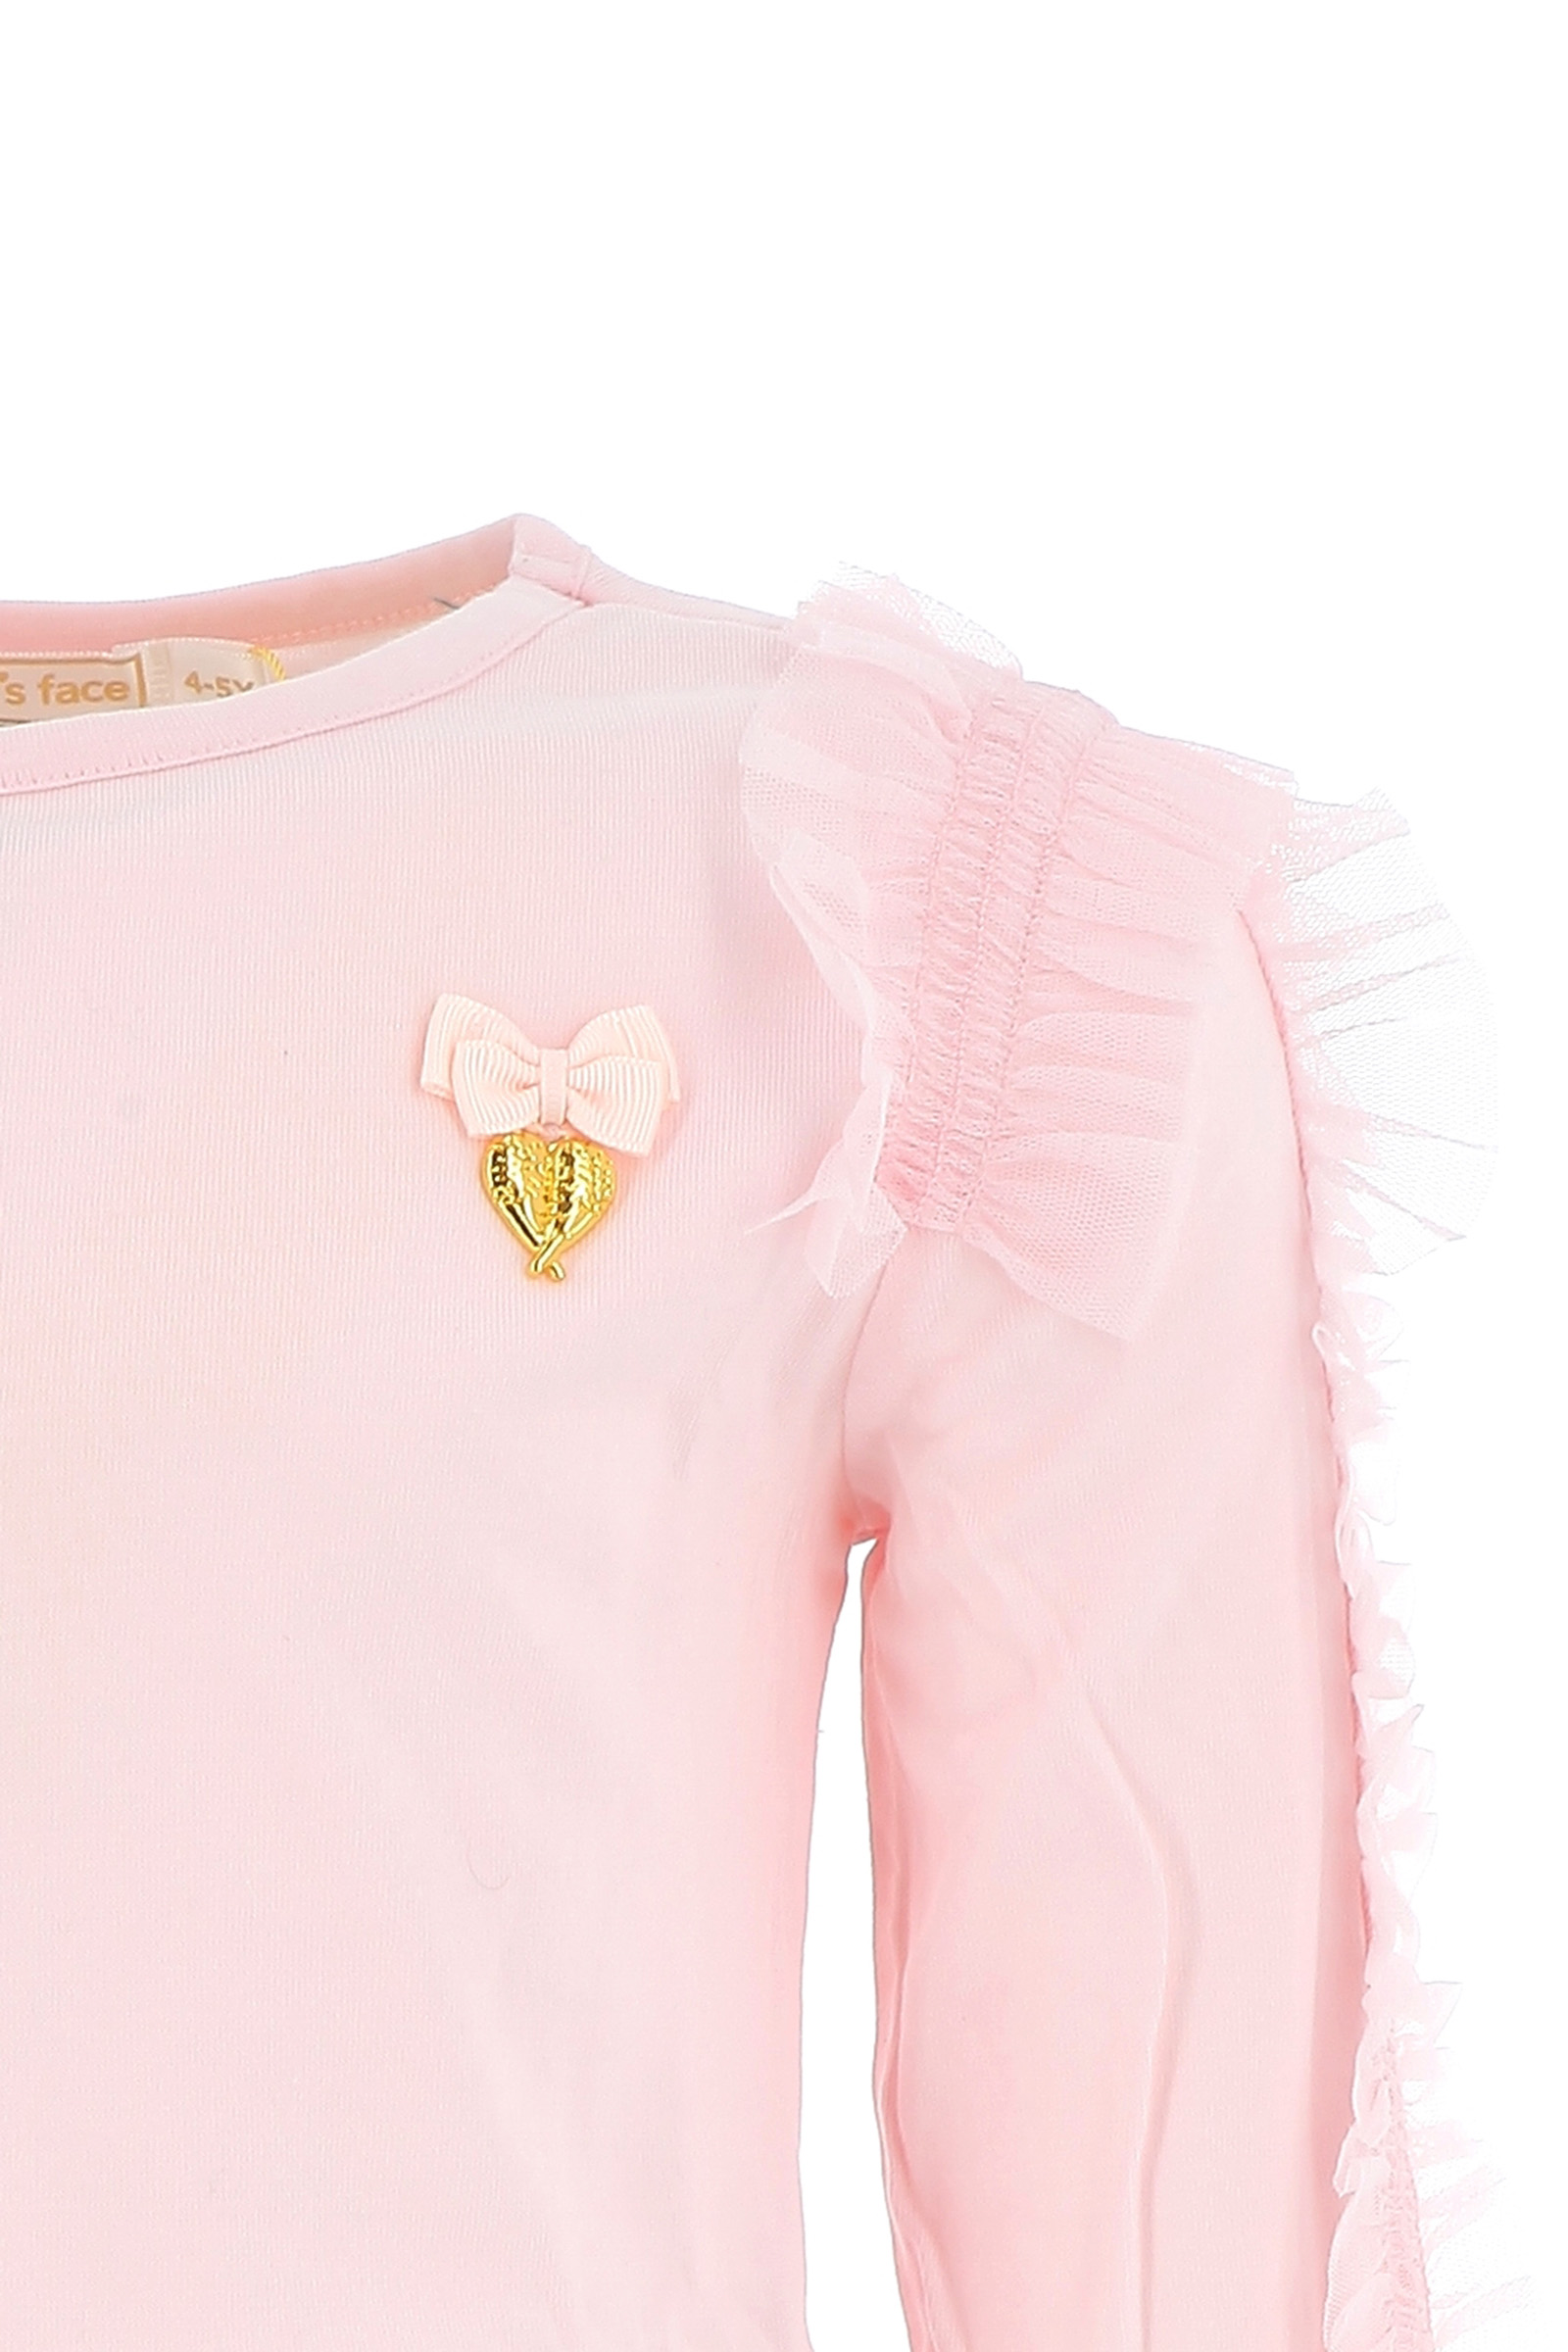 maglia Angel's Face | T-shirt | NEVEBALLET PINK